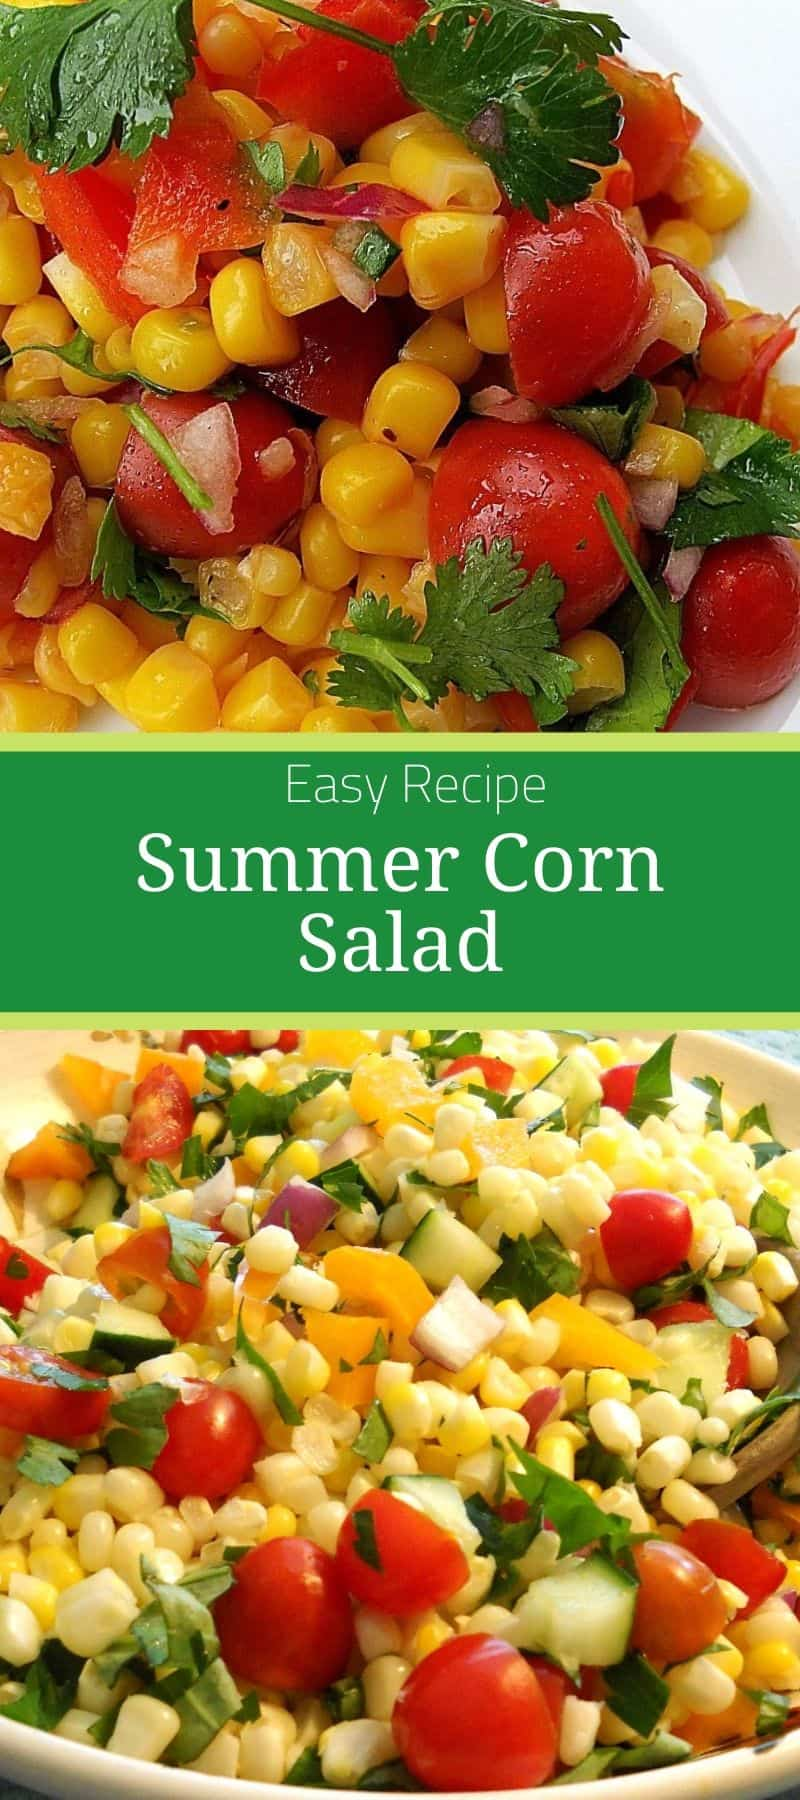 Summer Corn Salad Recipe 3